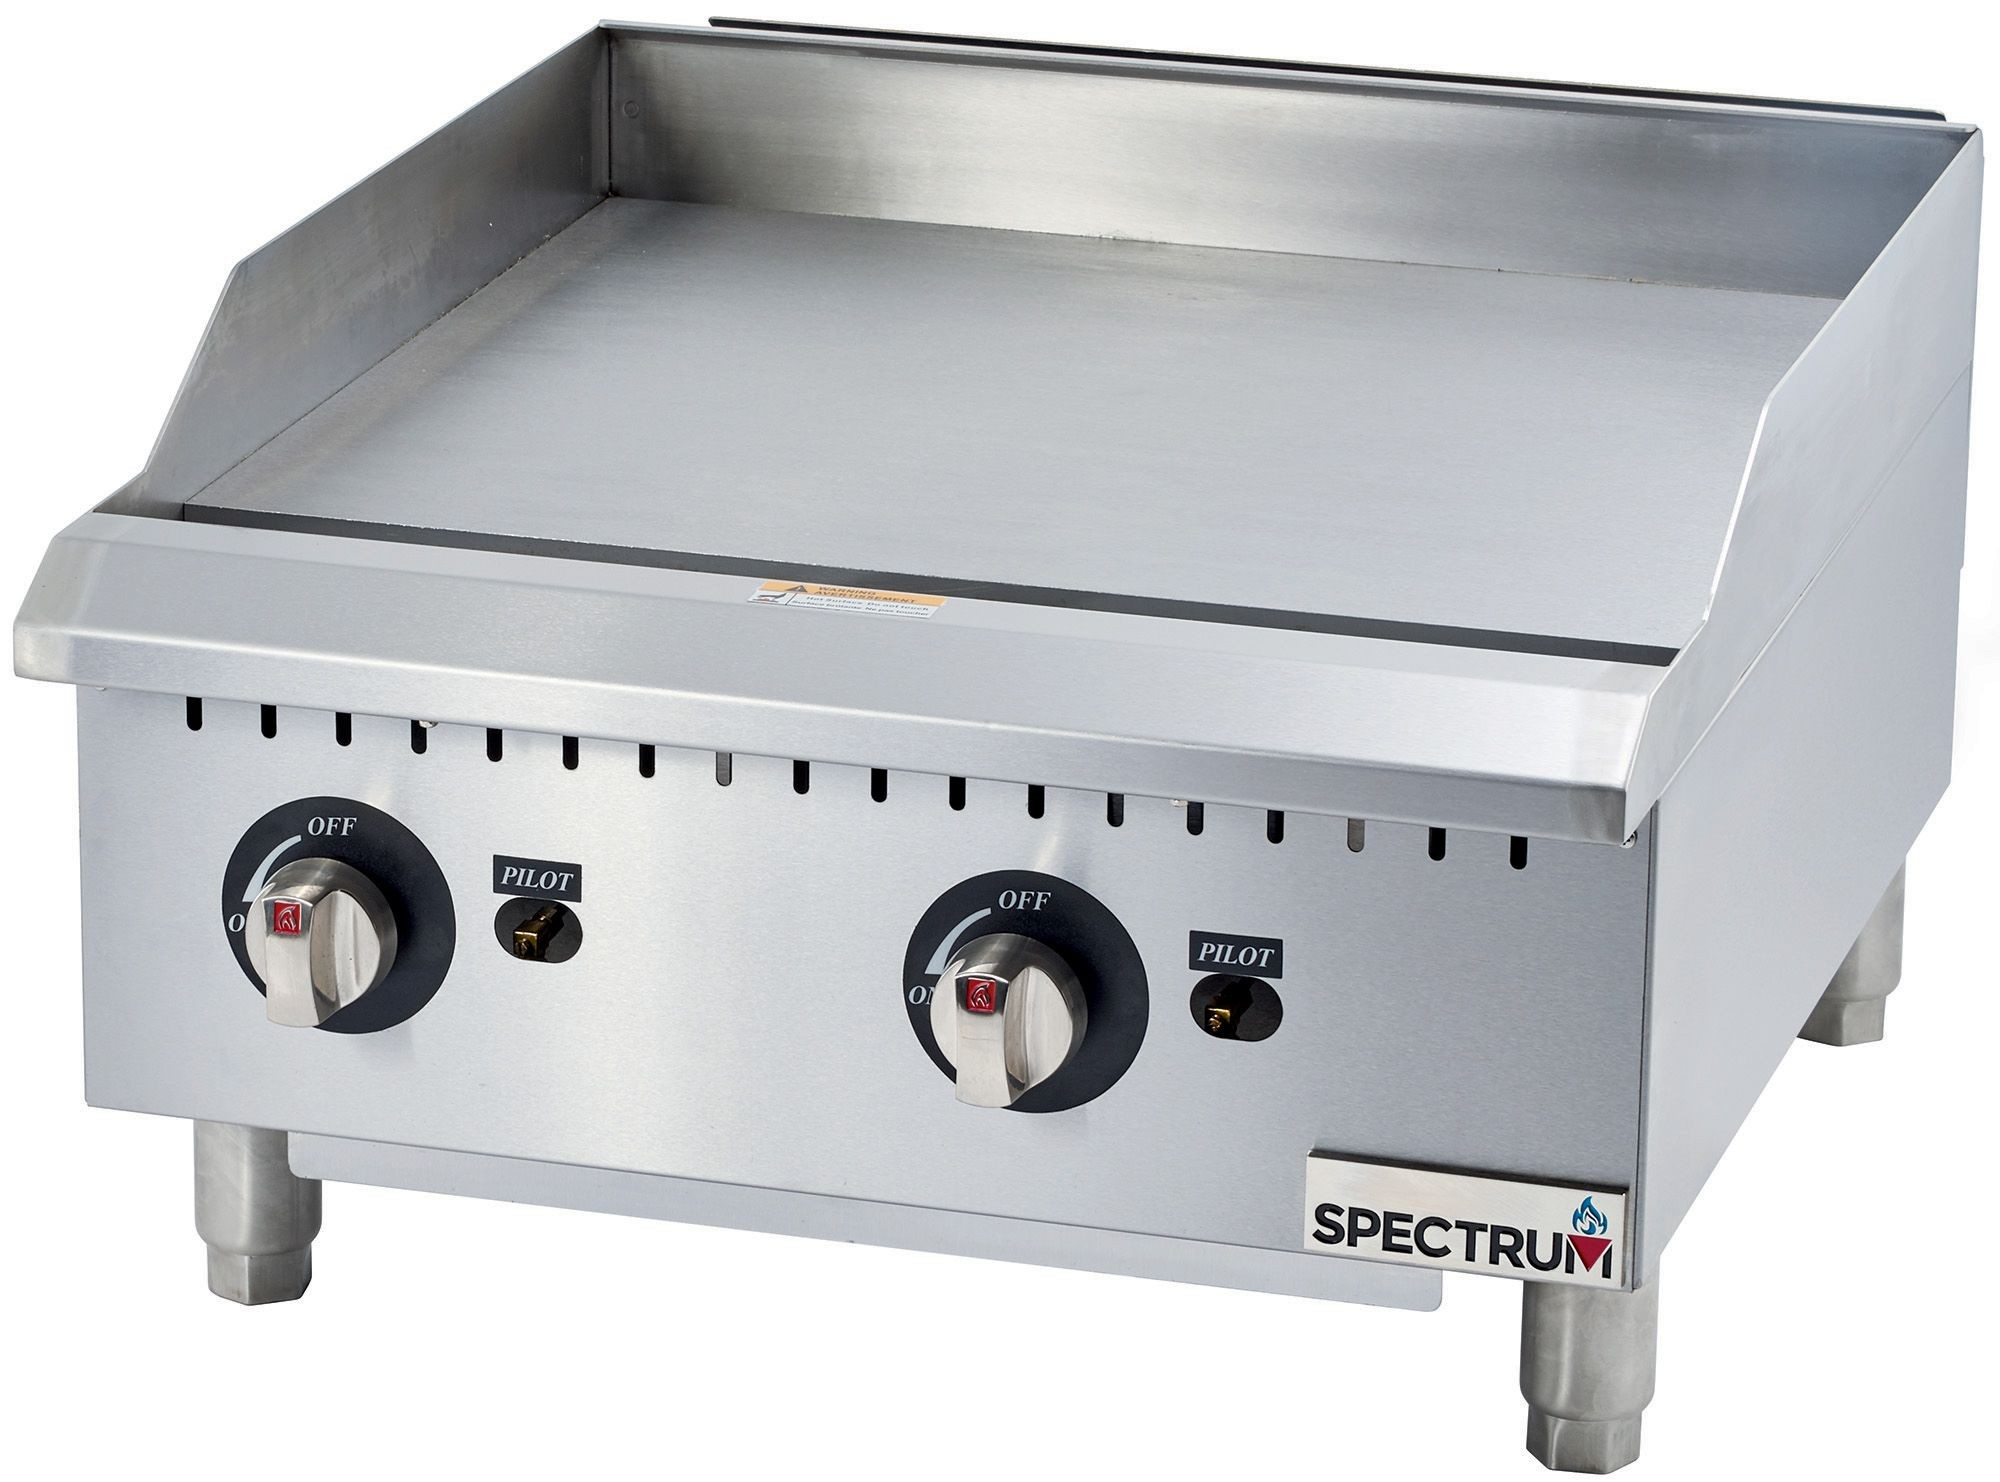 Winco GGD-24M Spectrum Gas Countertop Griddle with Manual Controls 24""